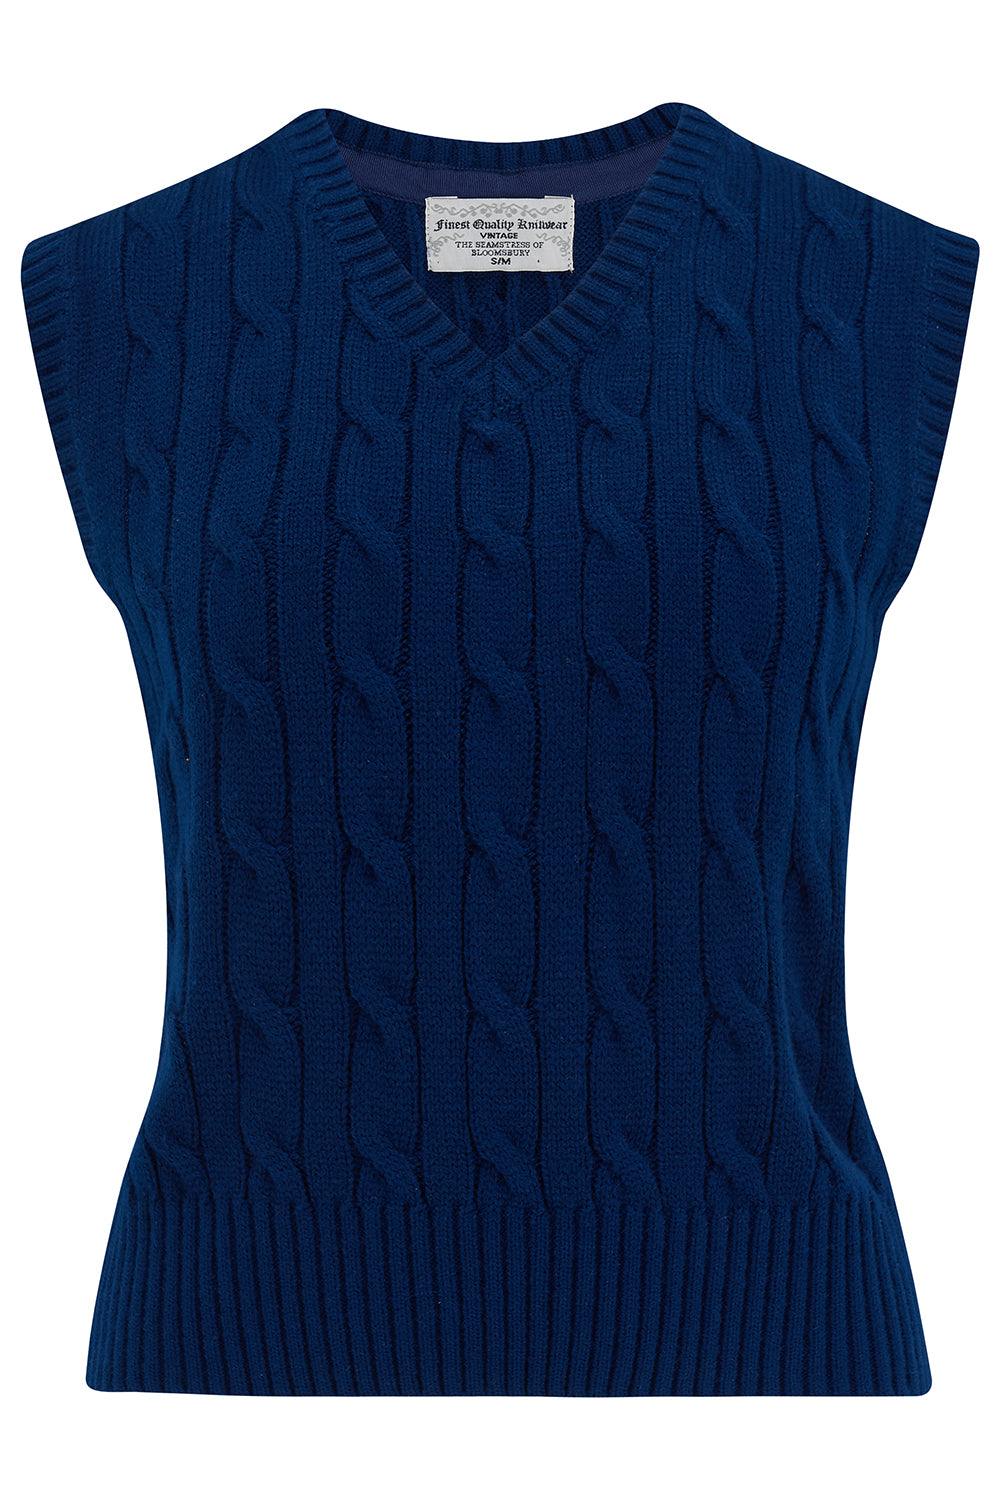 Cable Knit Slipover in French Navy, Stunning 1940s True Vintage Style - RocknRomance True 1940s & 1950s Vintage Style